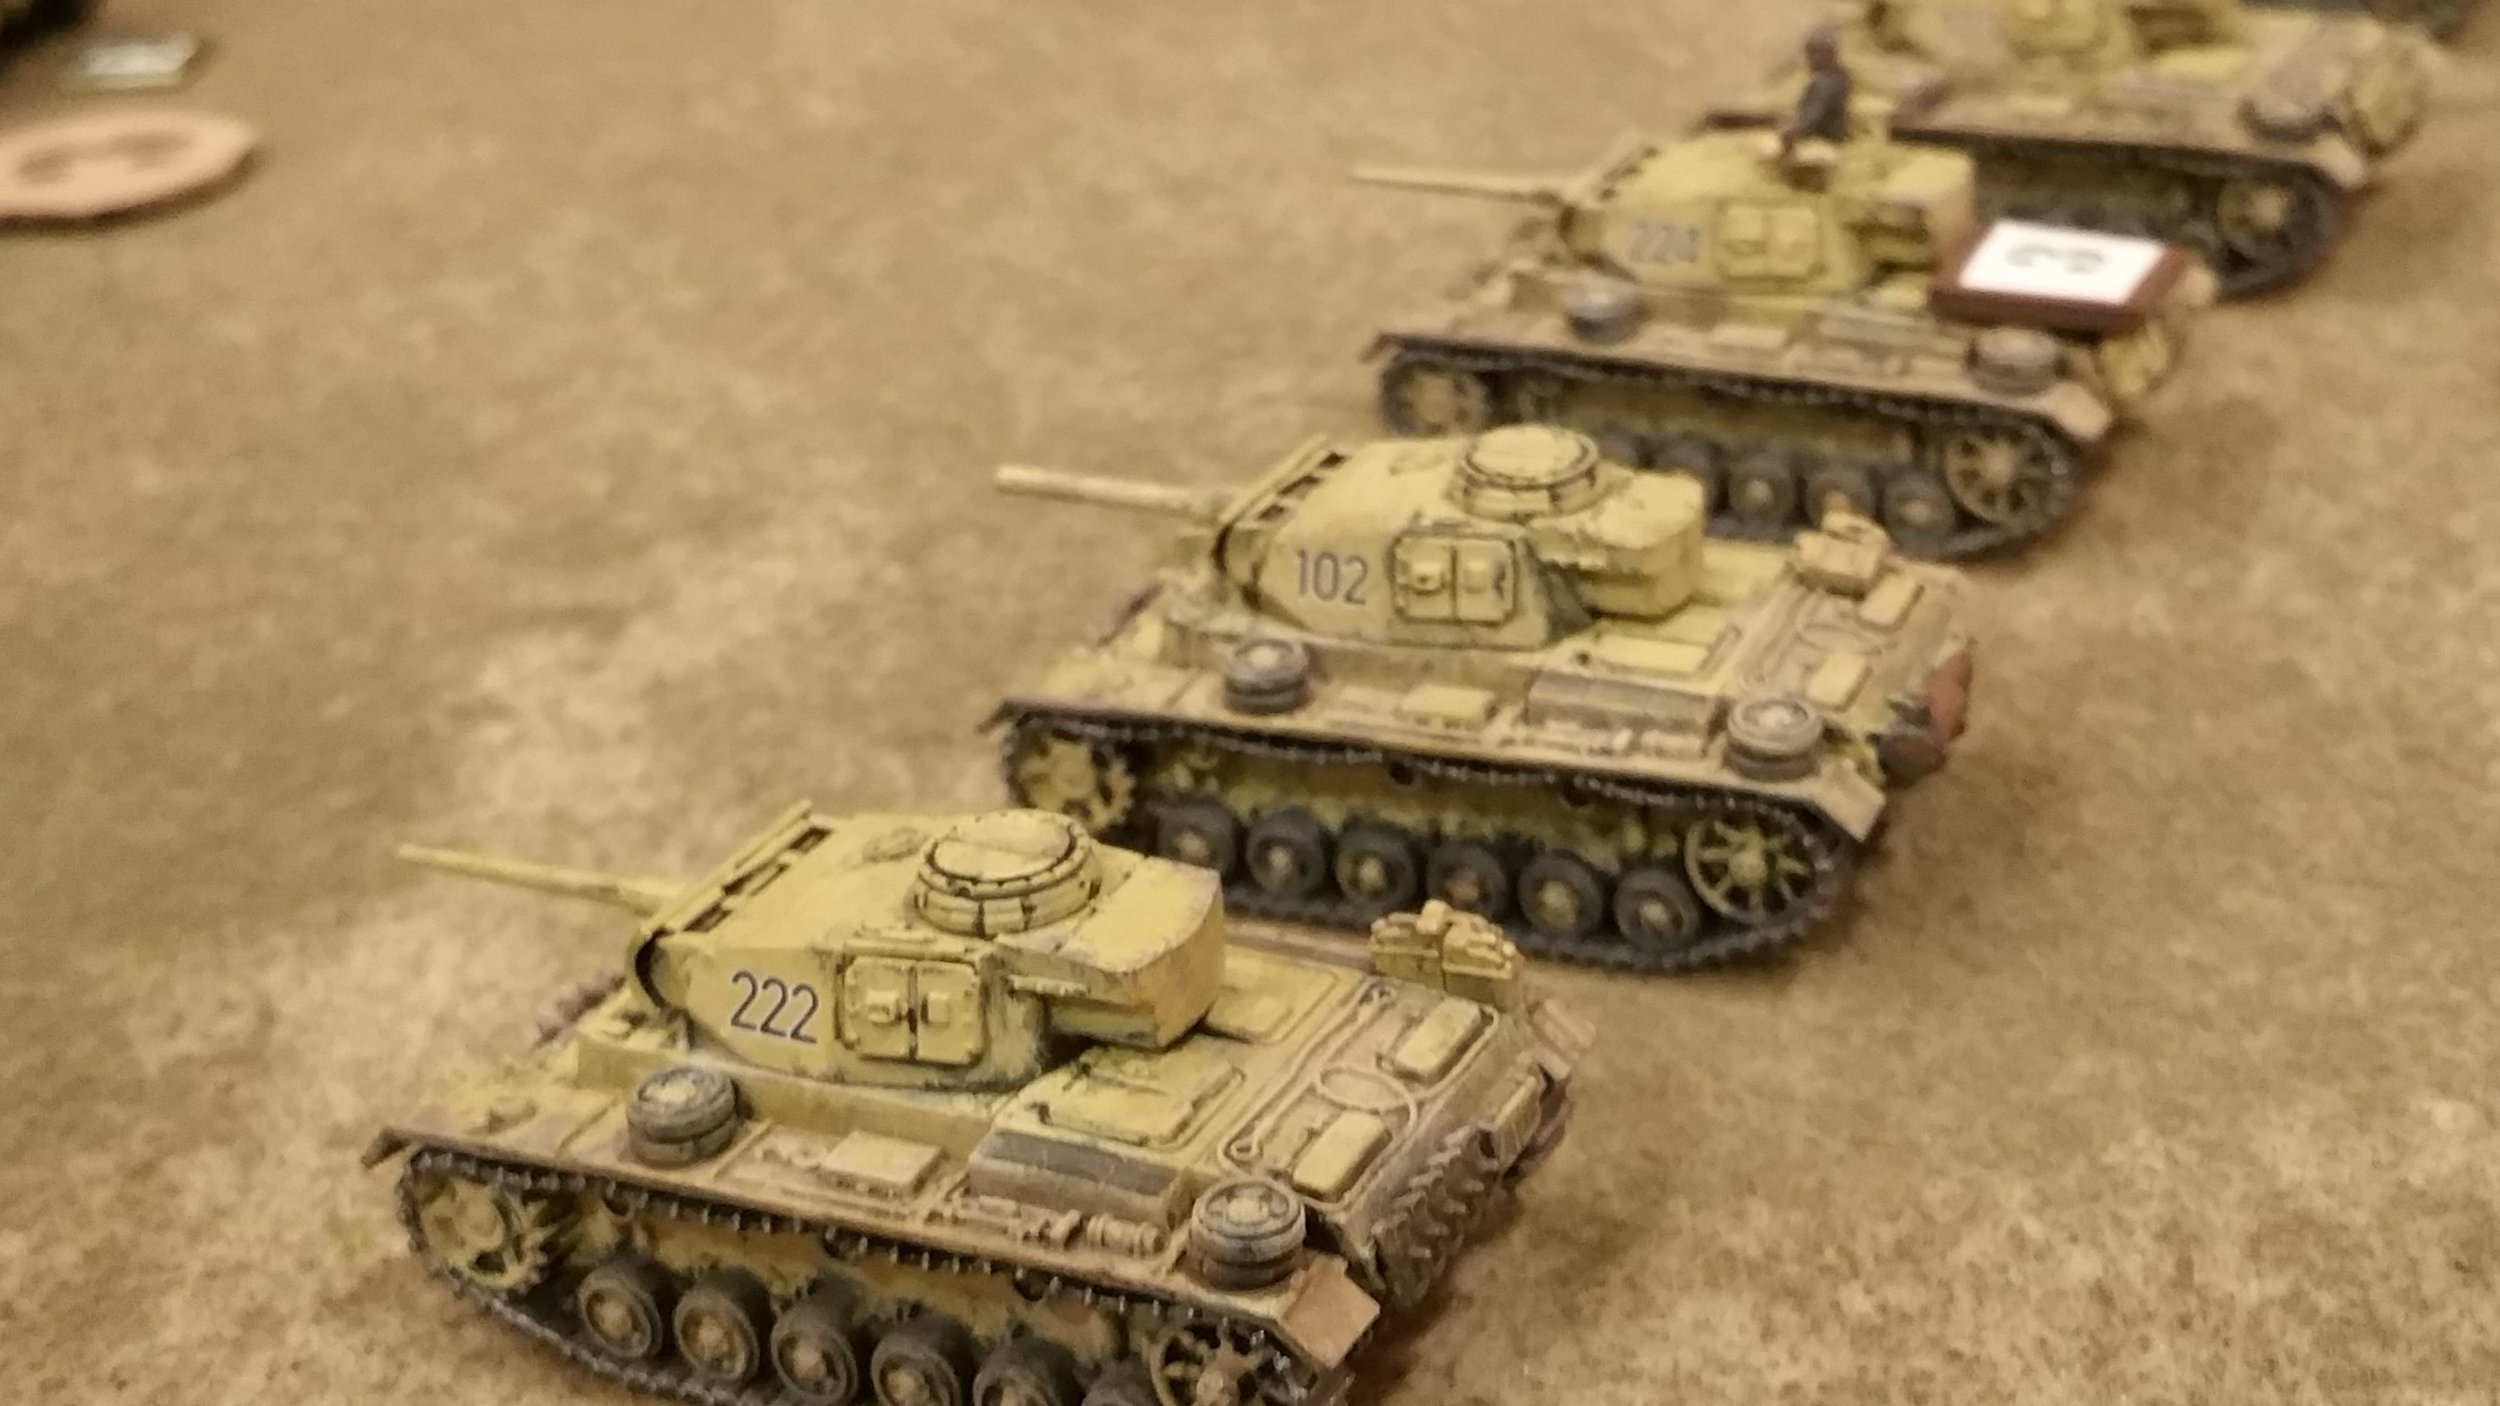 The AFRIKA KORPS ADVANCES